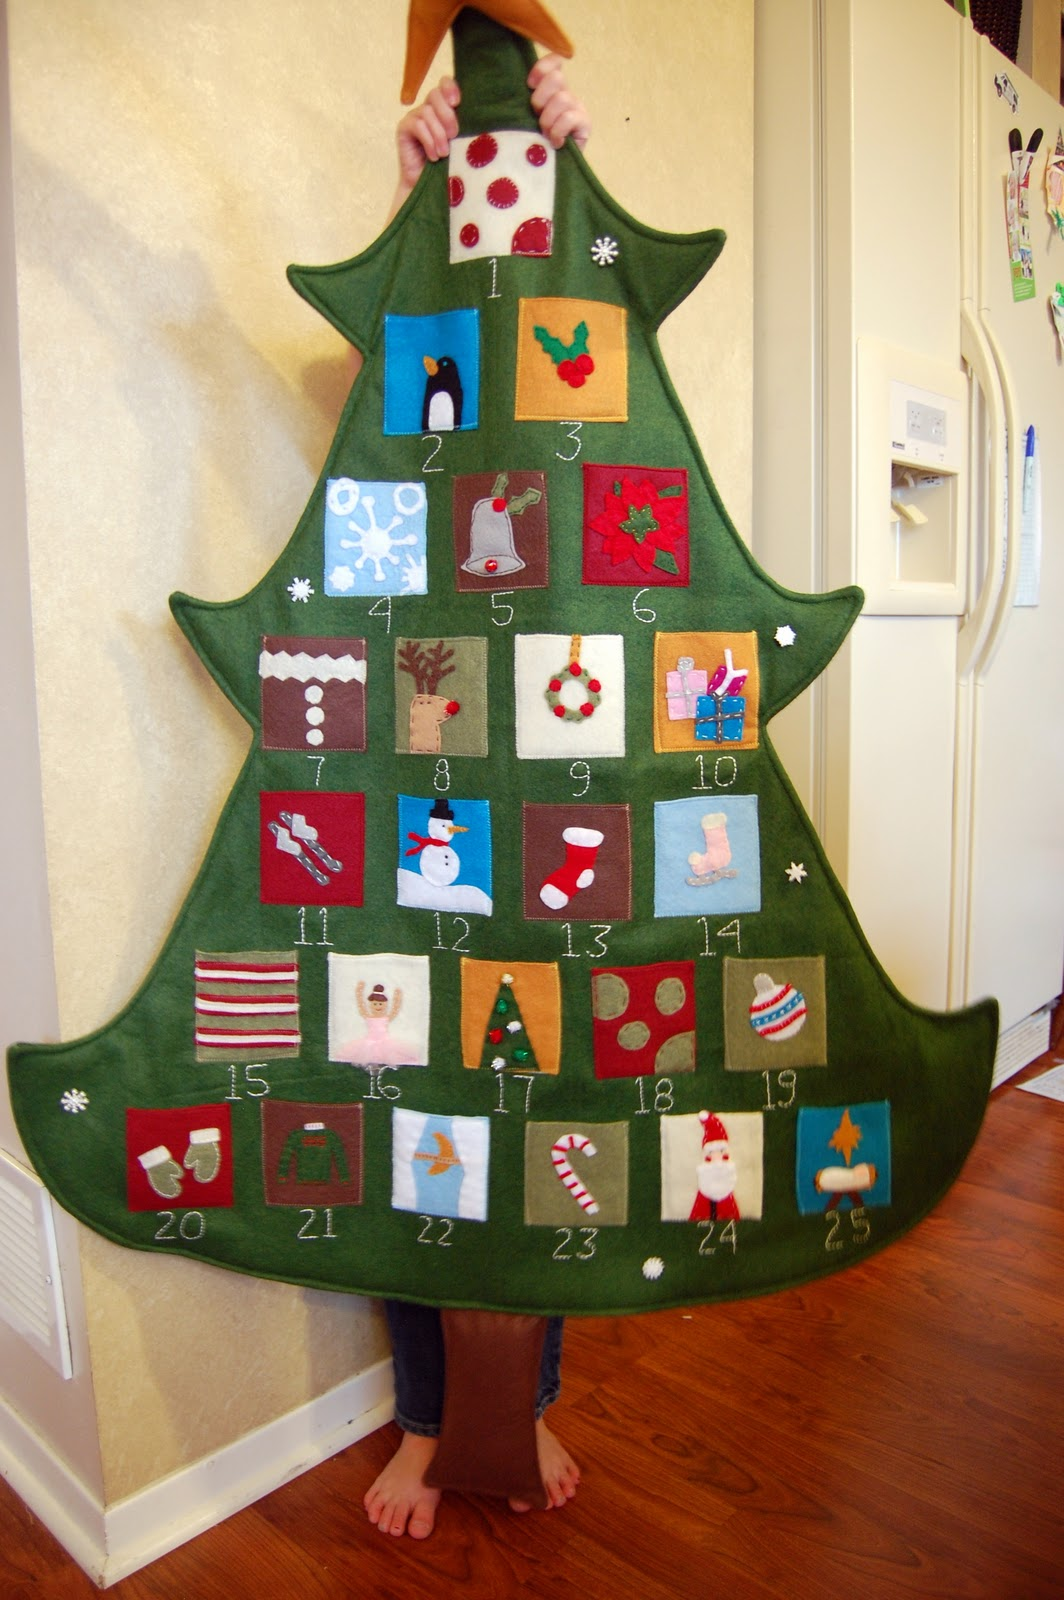 Sewn Advent Calendar Ideas : Felt advent calendar family ever after sugar bee crafts